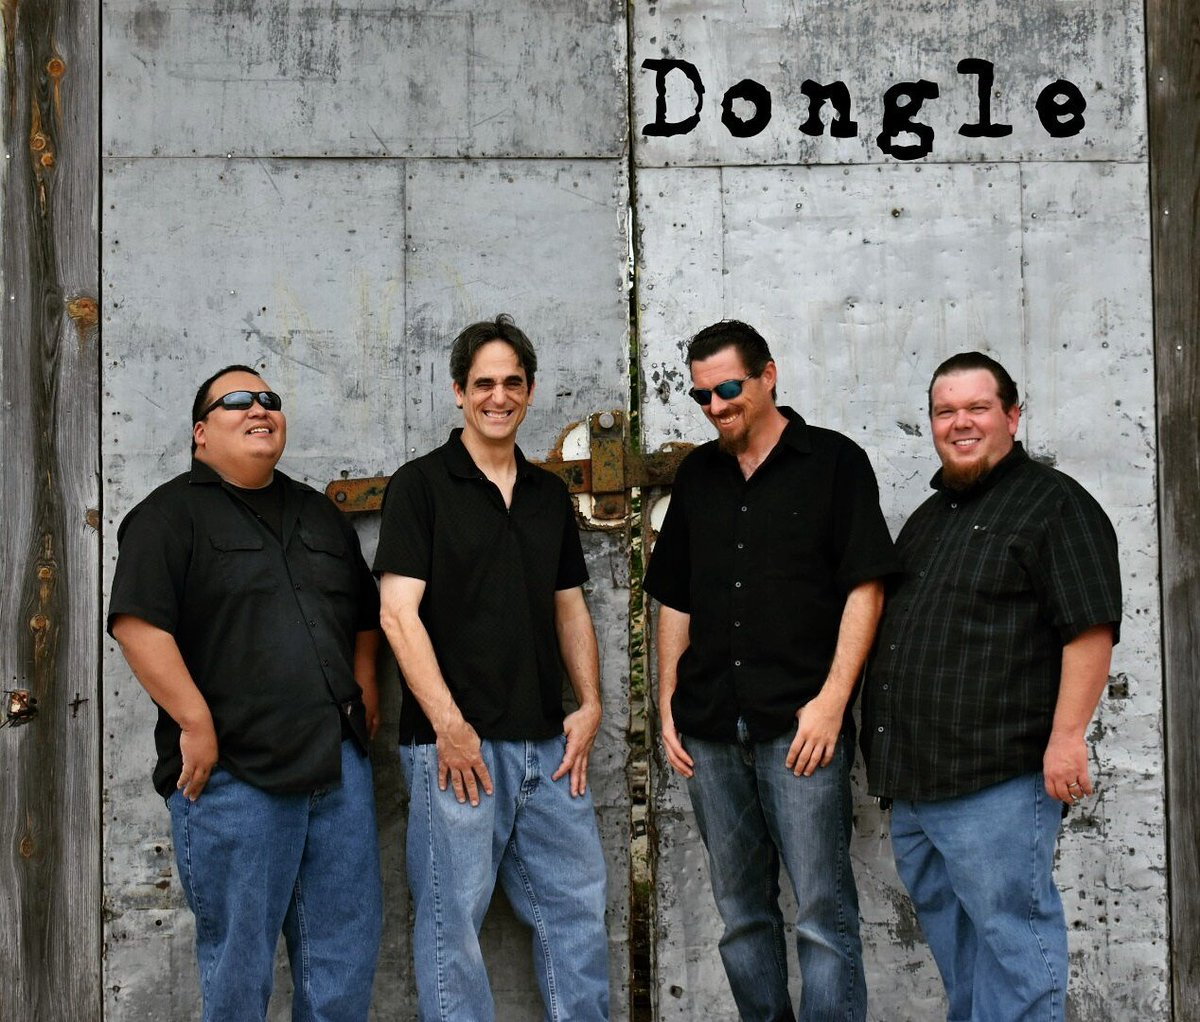 Go #follow the Dongles on #Facebook at  https://www. facebook.com/DongleMusic/  &nbsp;   Everyone needs more Dongle in their lives!!  #midday #zombielove #donglelife<br>http://pic.twitter.com/zcoA1bX8WM